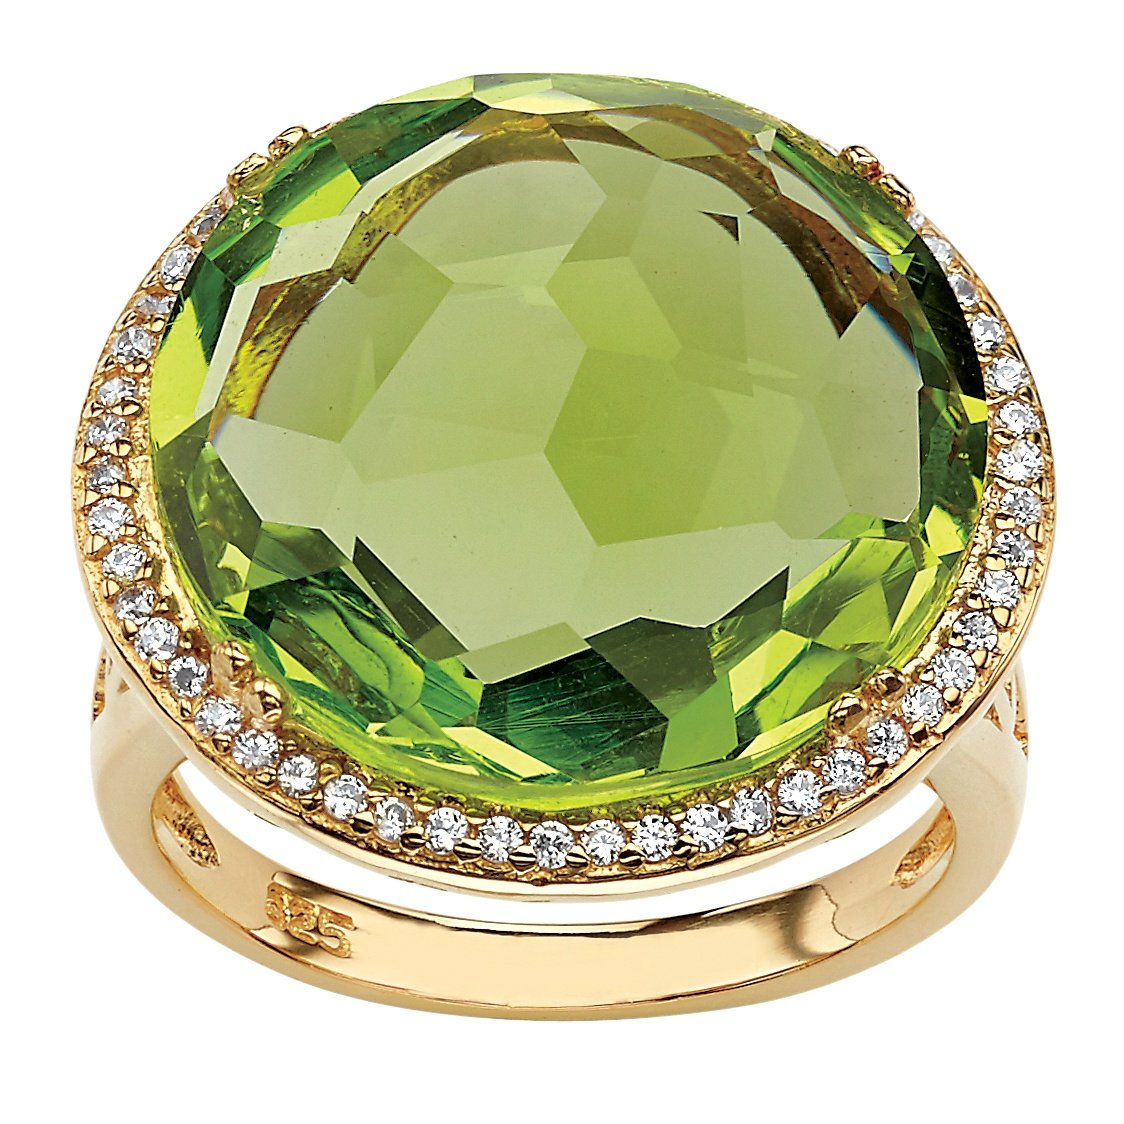 Seta Jewelry Checkerboard-Cut Simulated Peridot and CZ 14k Gold-Plated Halo Cocktail Ring